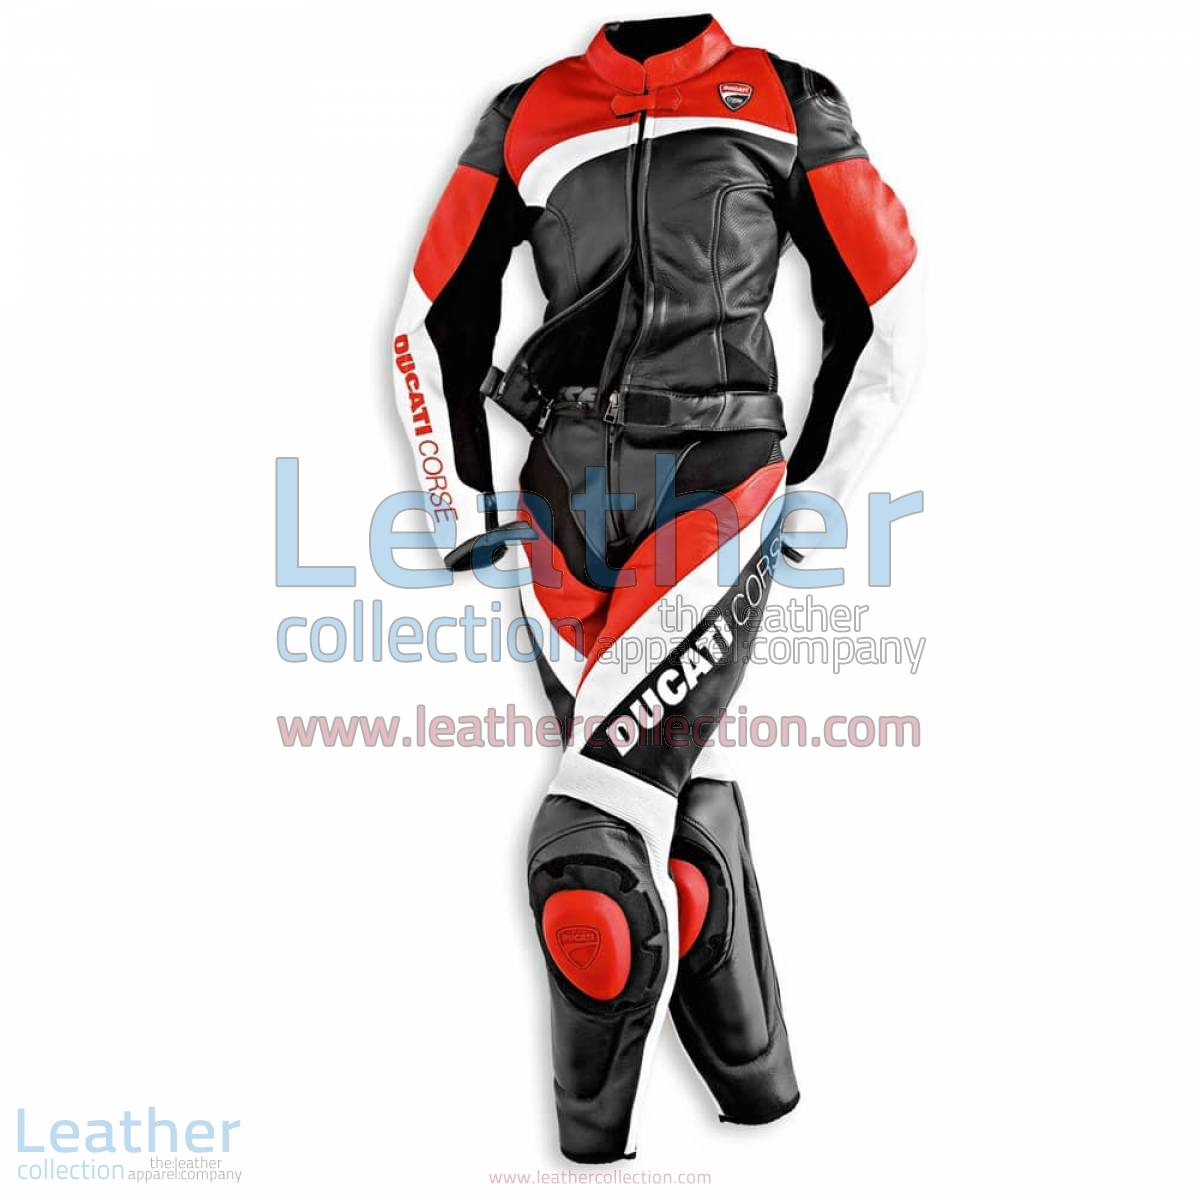 Ducati Corse Racing Leather Suit | ducati corse